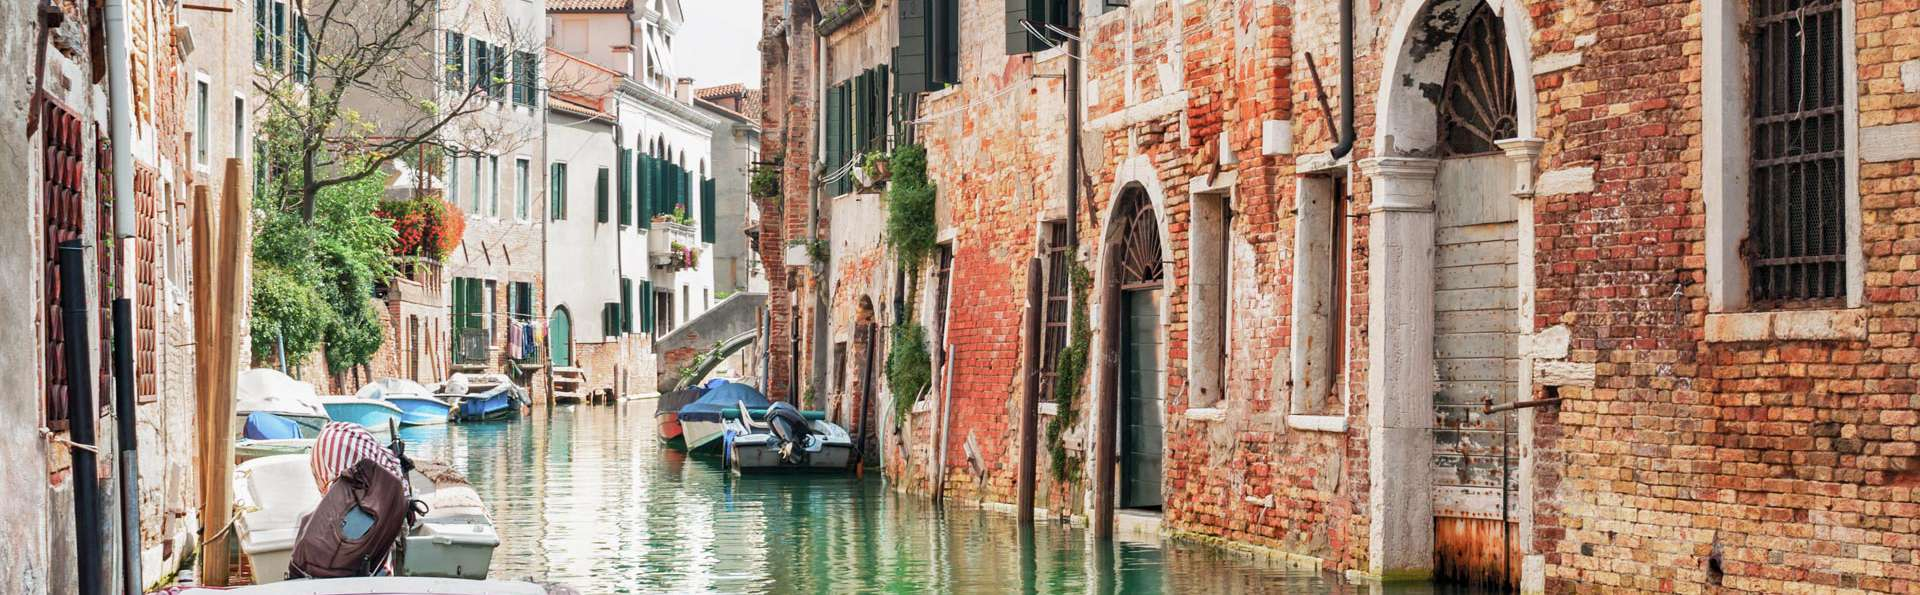 Residenza Manin Apartments - EDIT_VENECIA_19.jpg